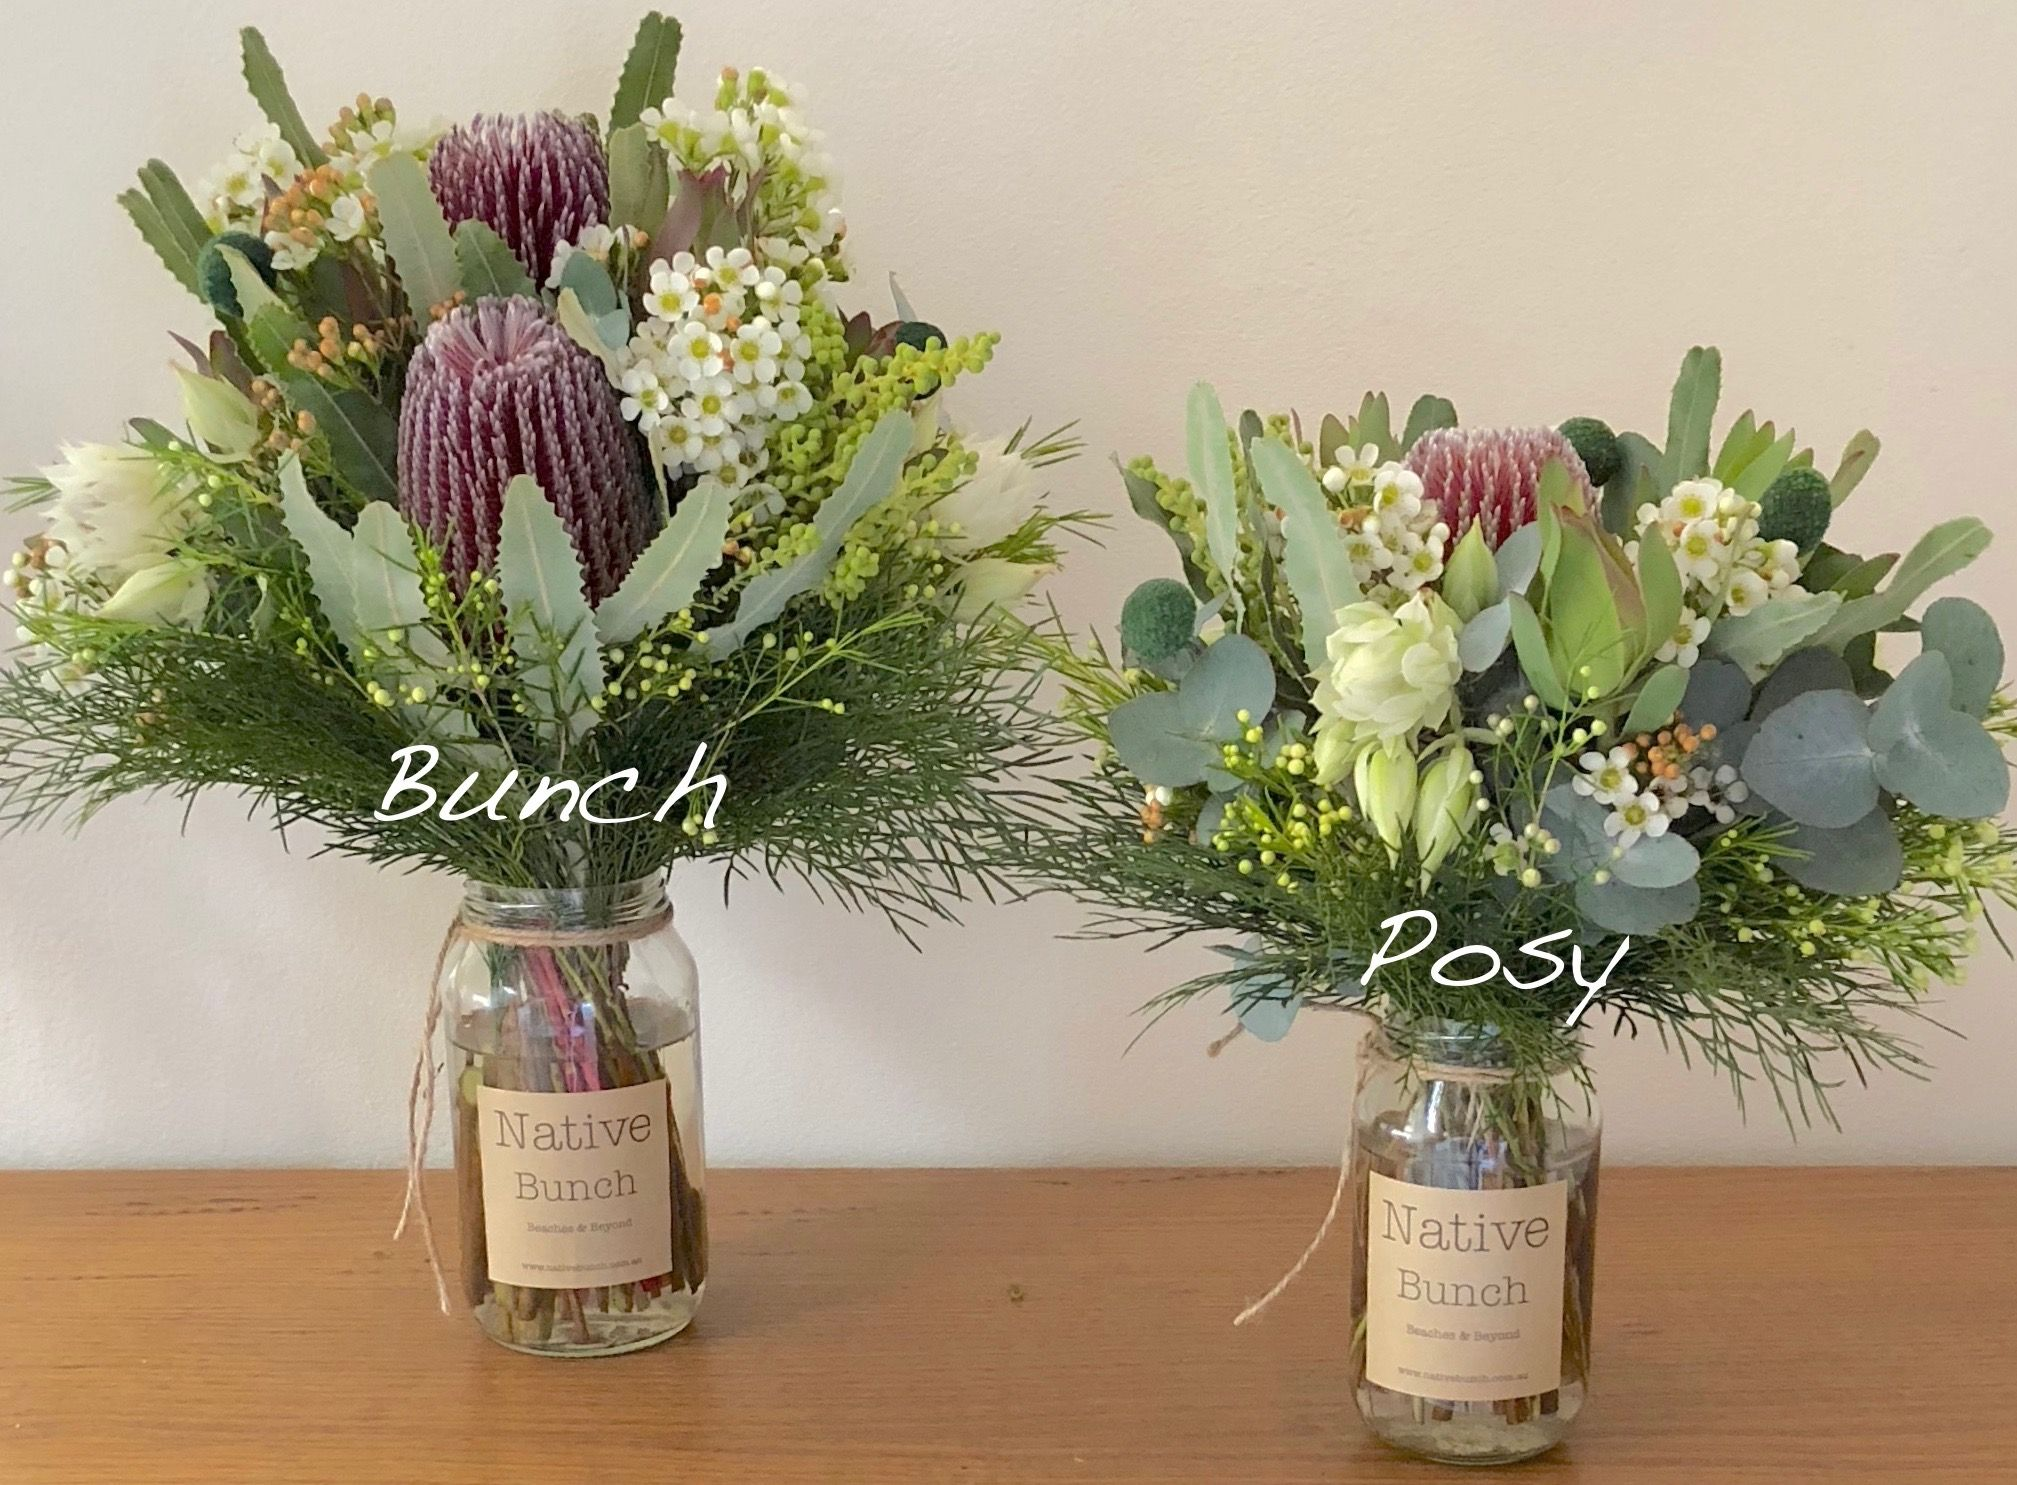 Native flowers Bunch 50 or Posy 30 delivered to Sydney